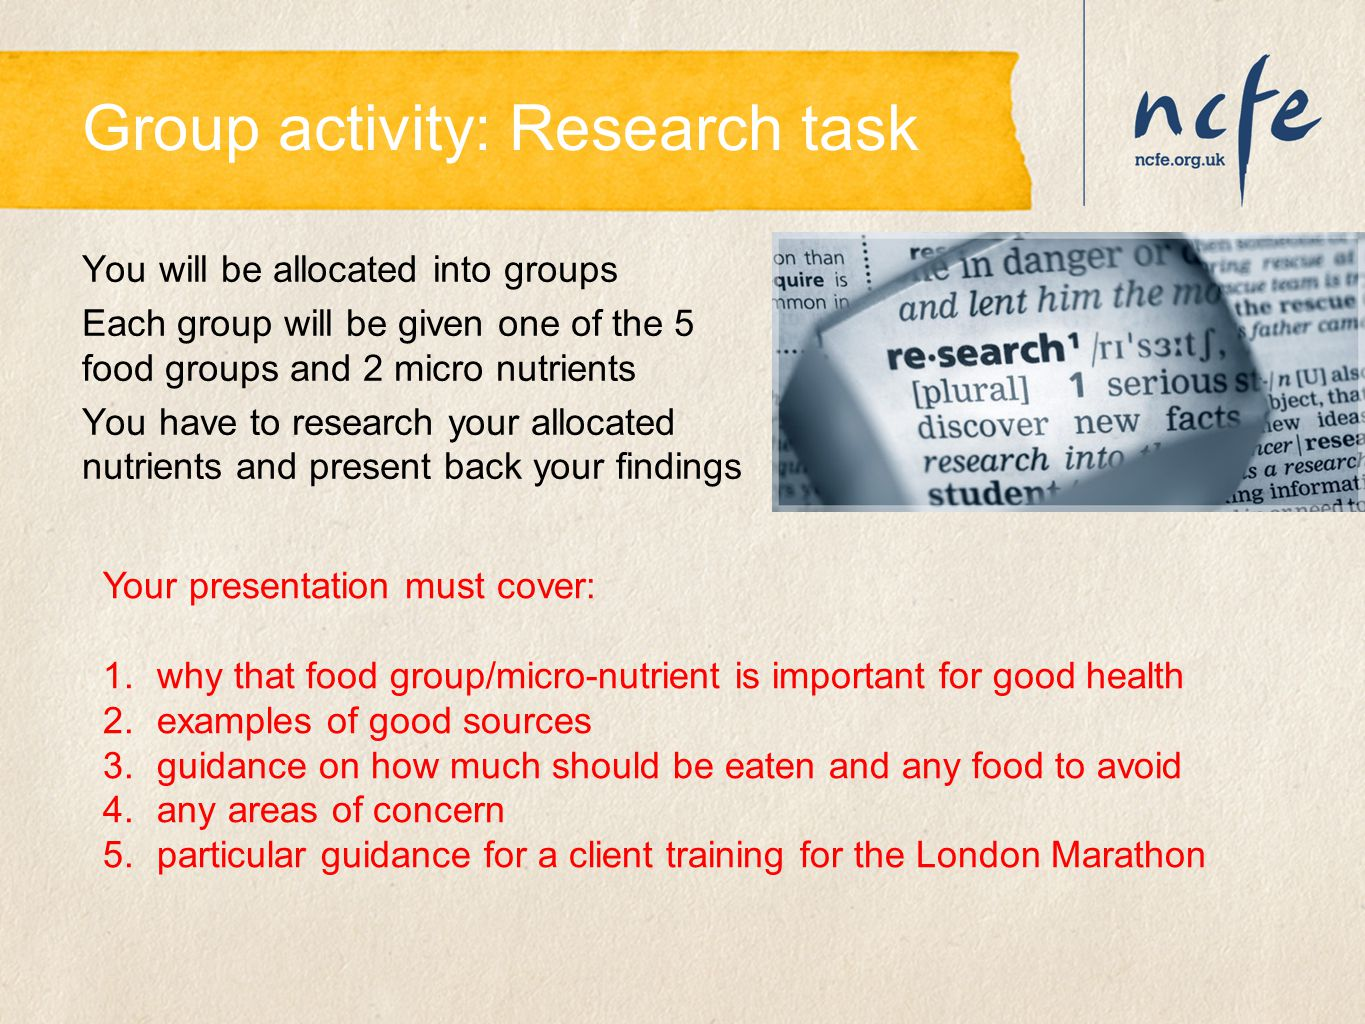 Group activity: Research task